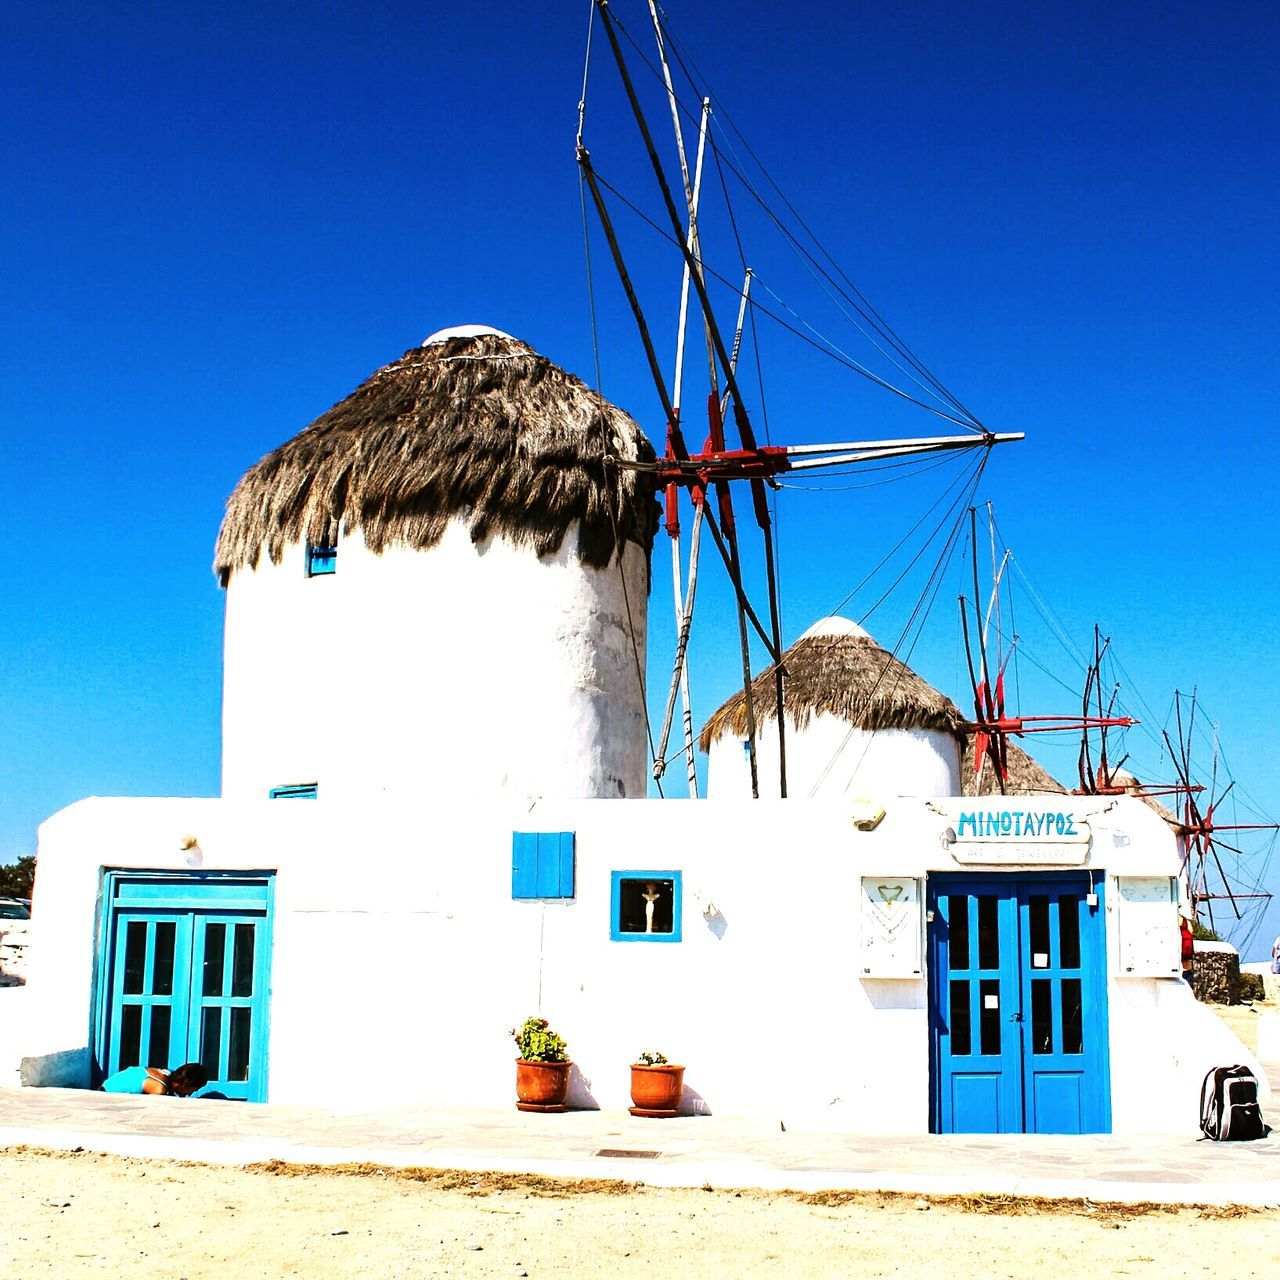 Mikonos Mykonos,Greece Mykonos Sobreexpuesta Windmill Windmills Windmills Photography Windmill Of The Day Blue And White Blue Sky Travel Travel Photography